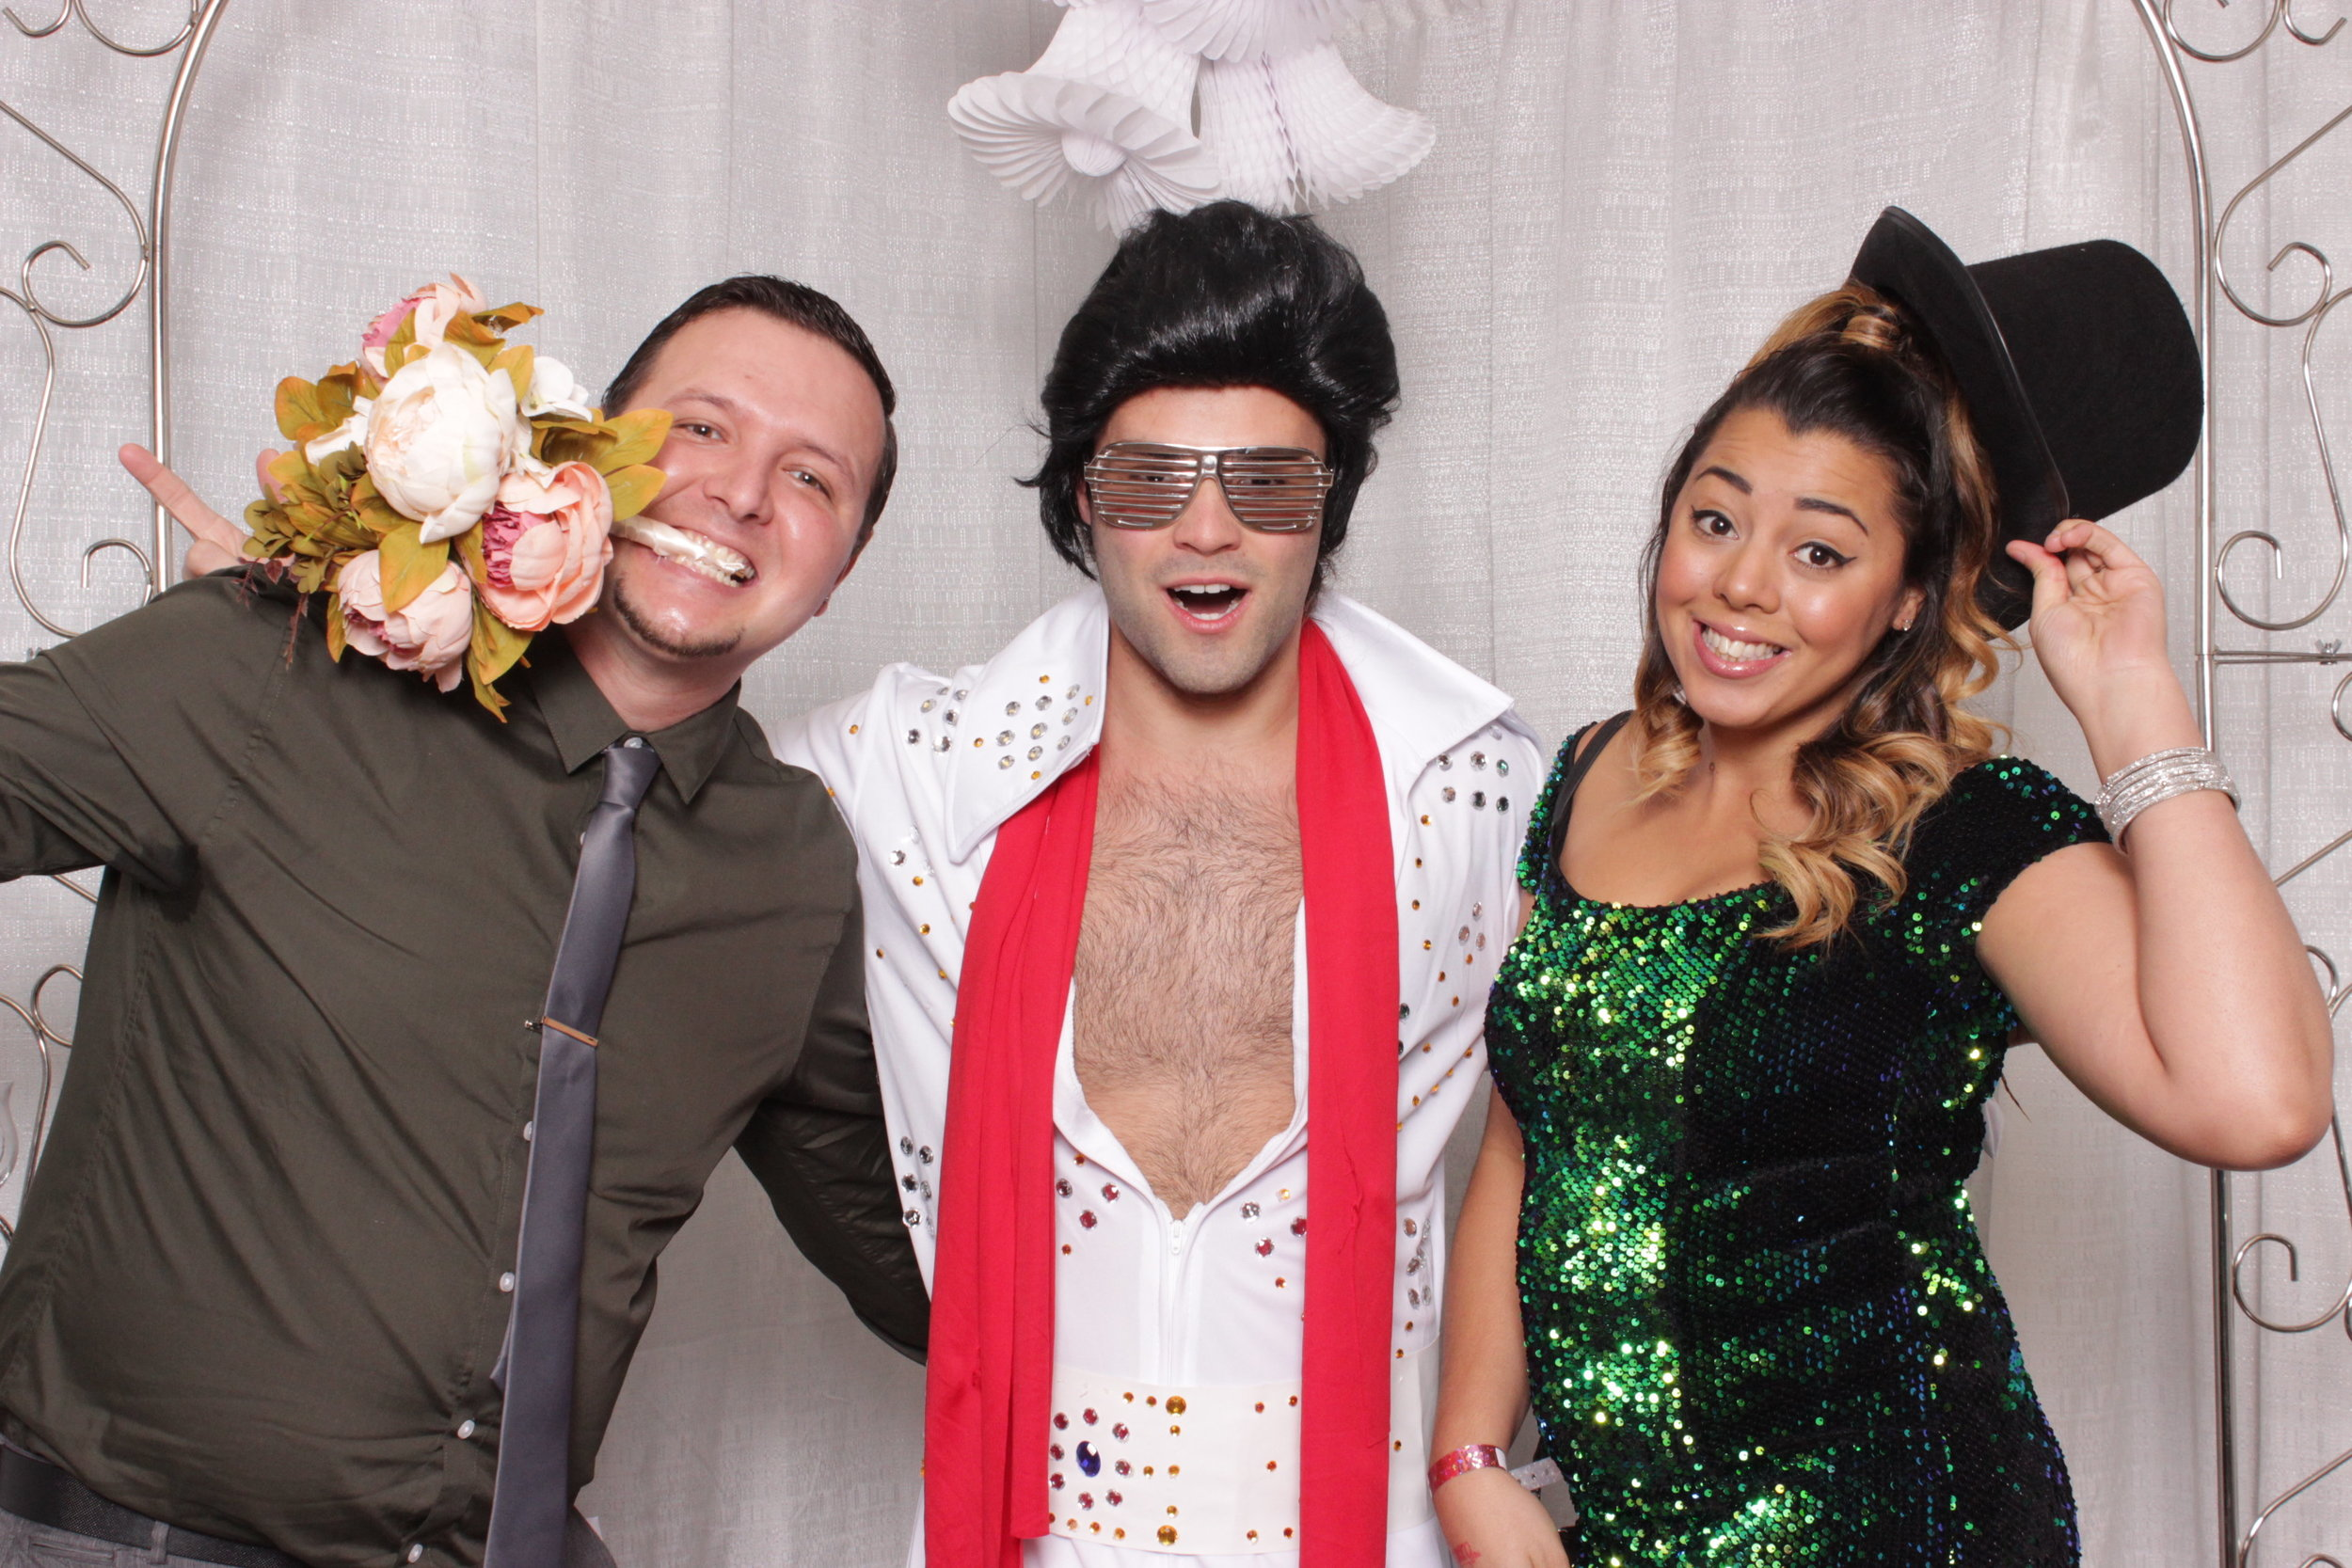 Chico-photo-booth-rental-quality-pictures